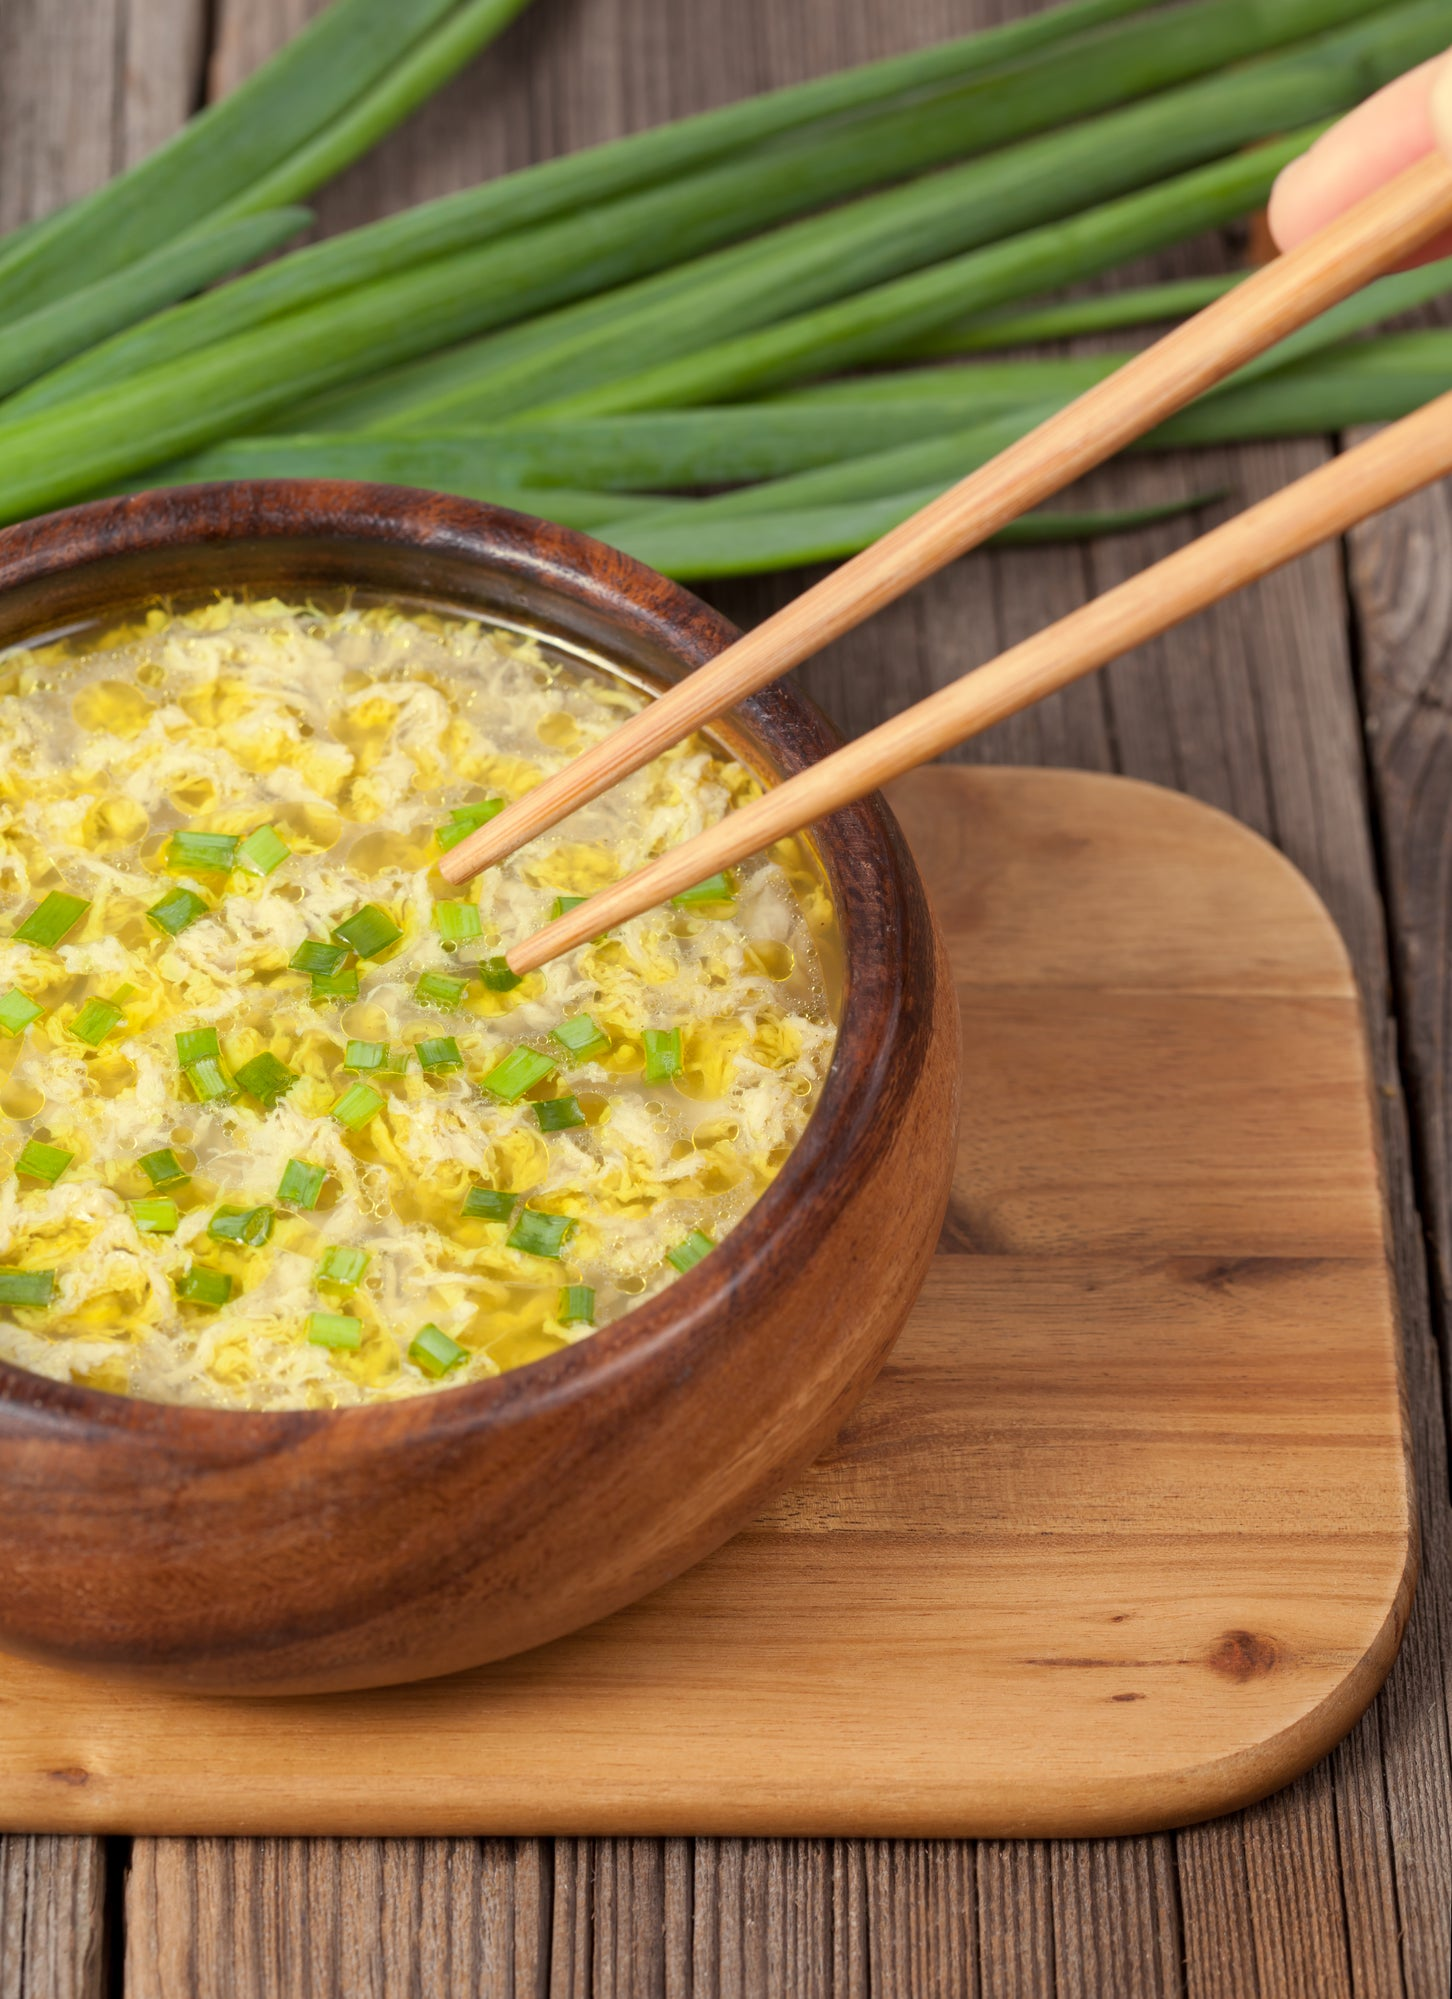 Lemongrass and Ginger Egg Drop Soup